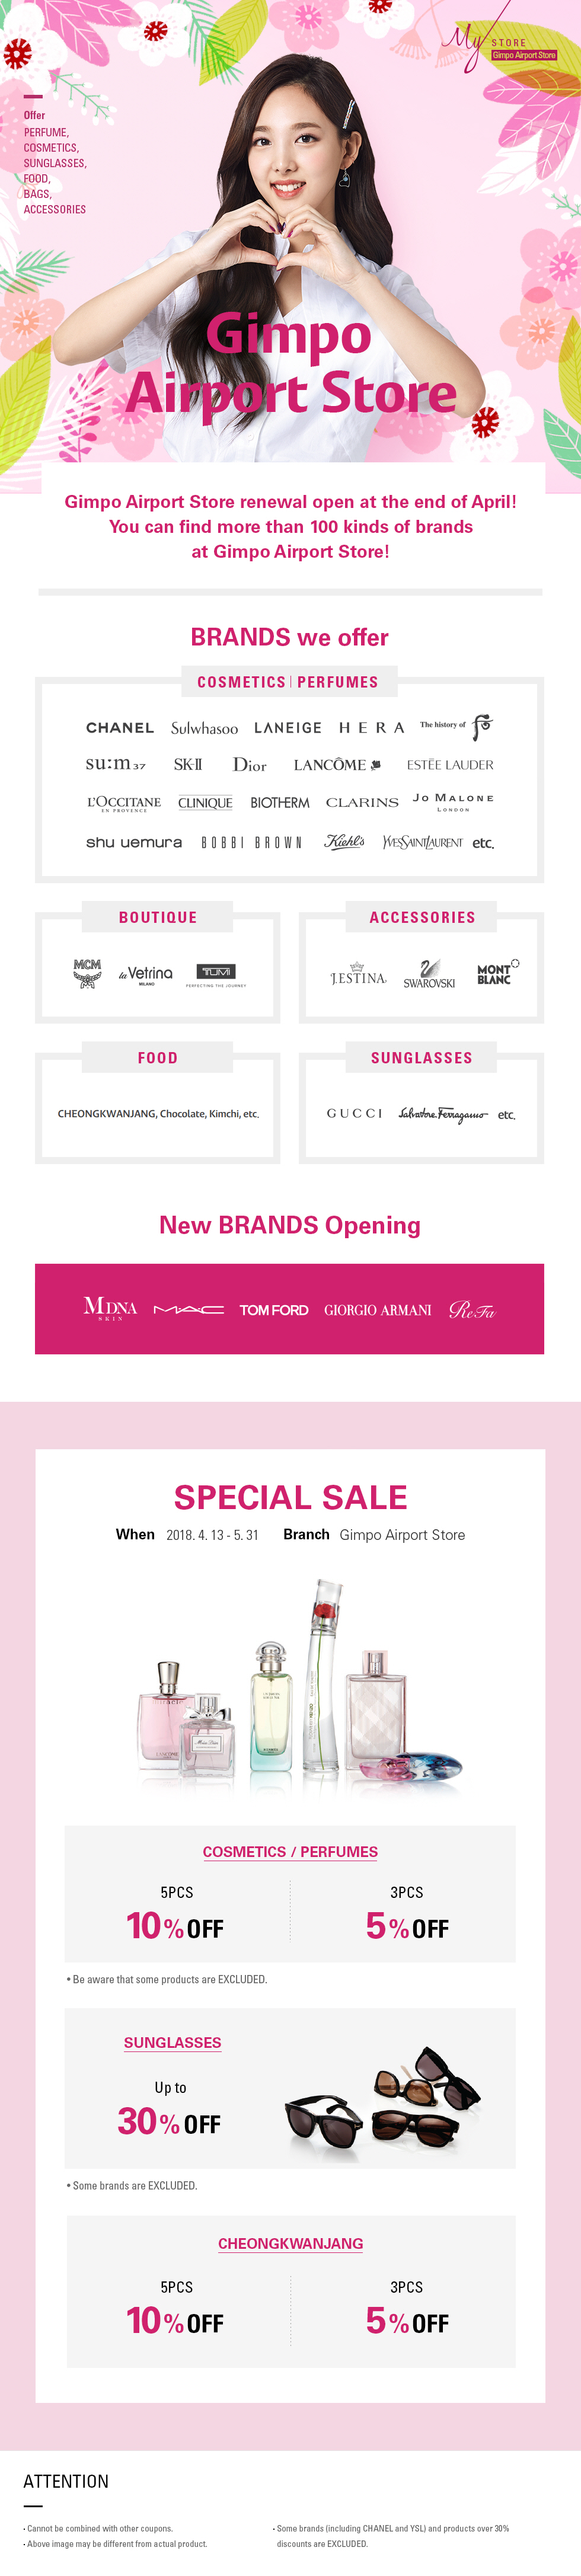 [Gimpo Airport Store] renewal open at the end of April!